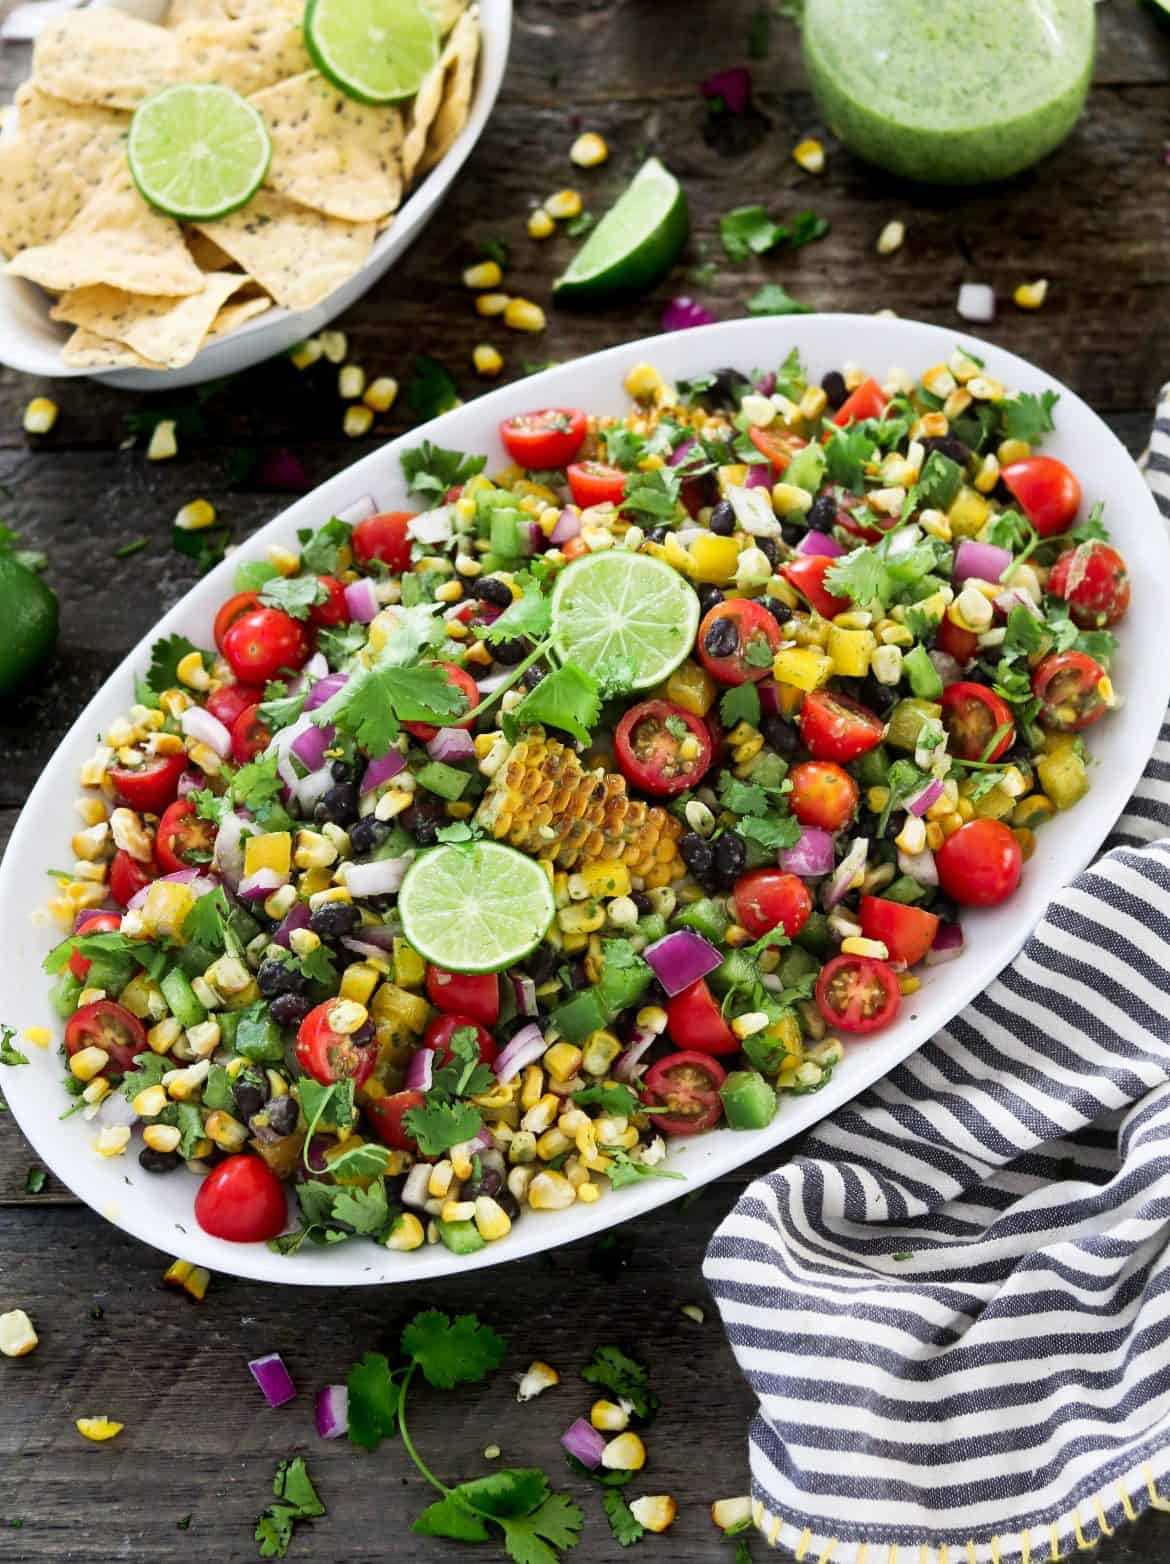 Grilled corn salad in serving tray on table.